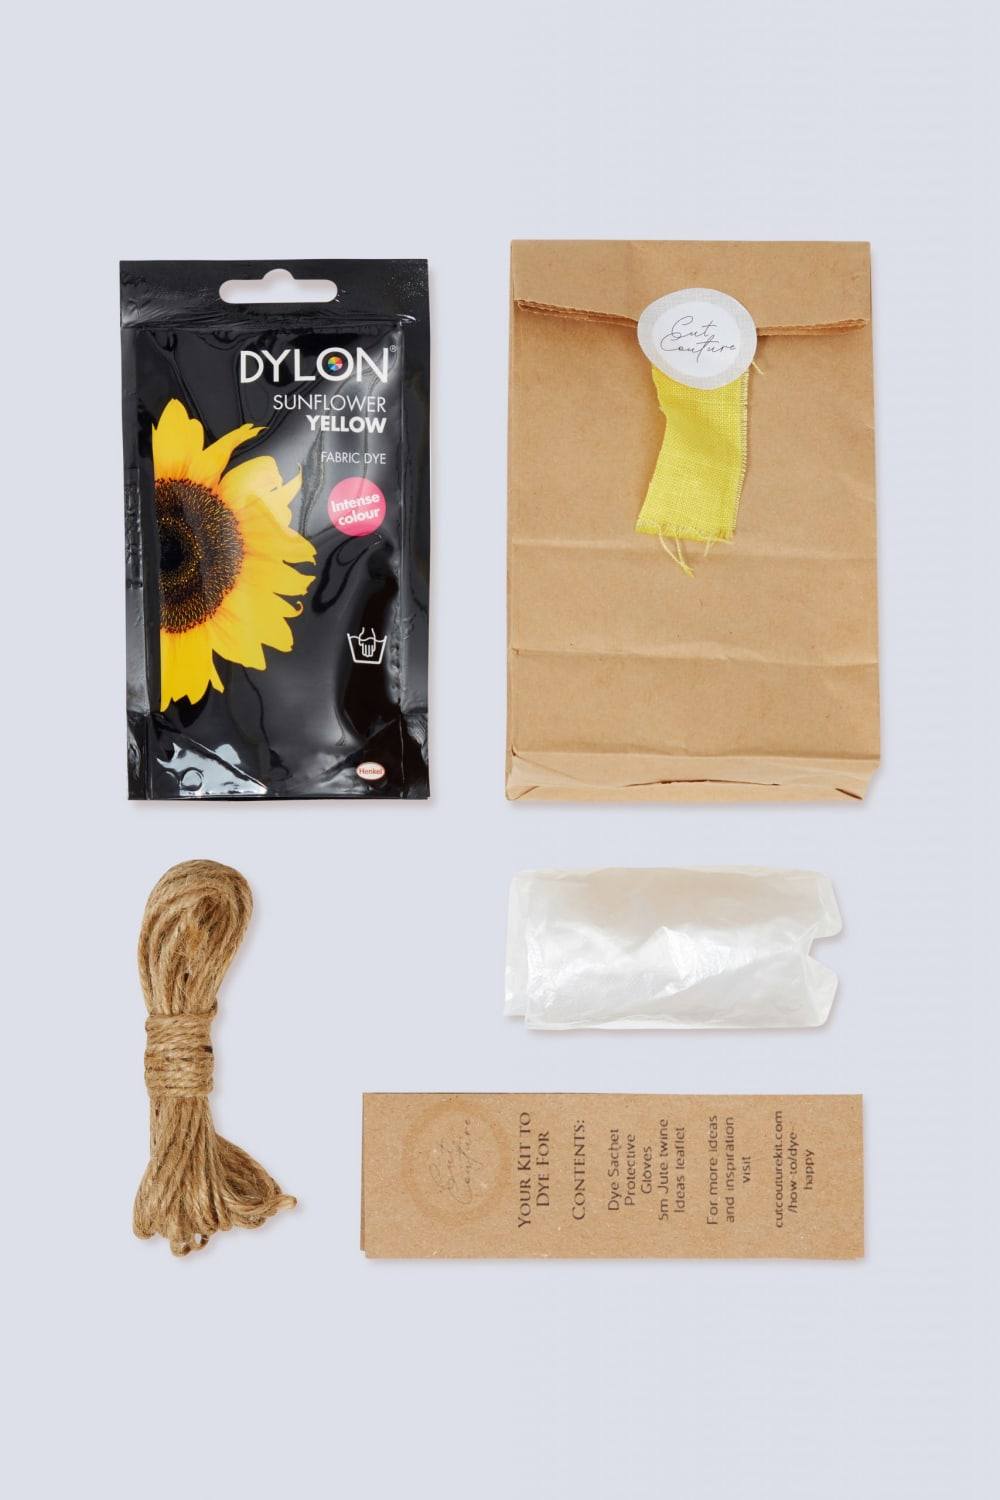 Sunflower yellow Dylon dye jute twine gloves information leaflet with bag and colour swatch